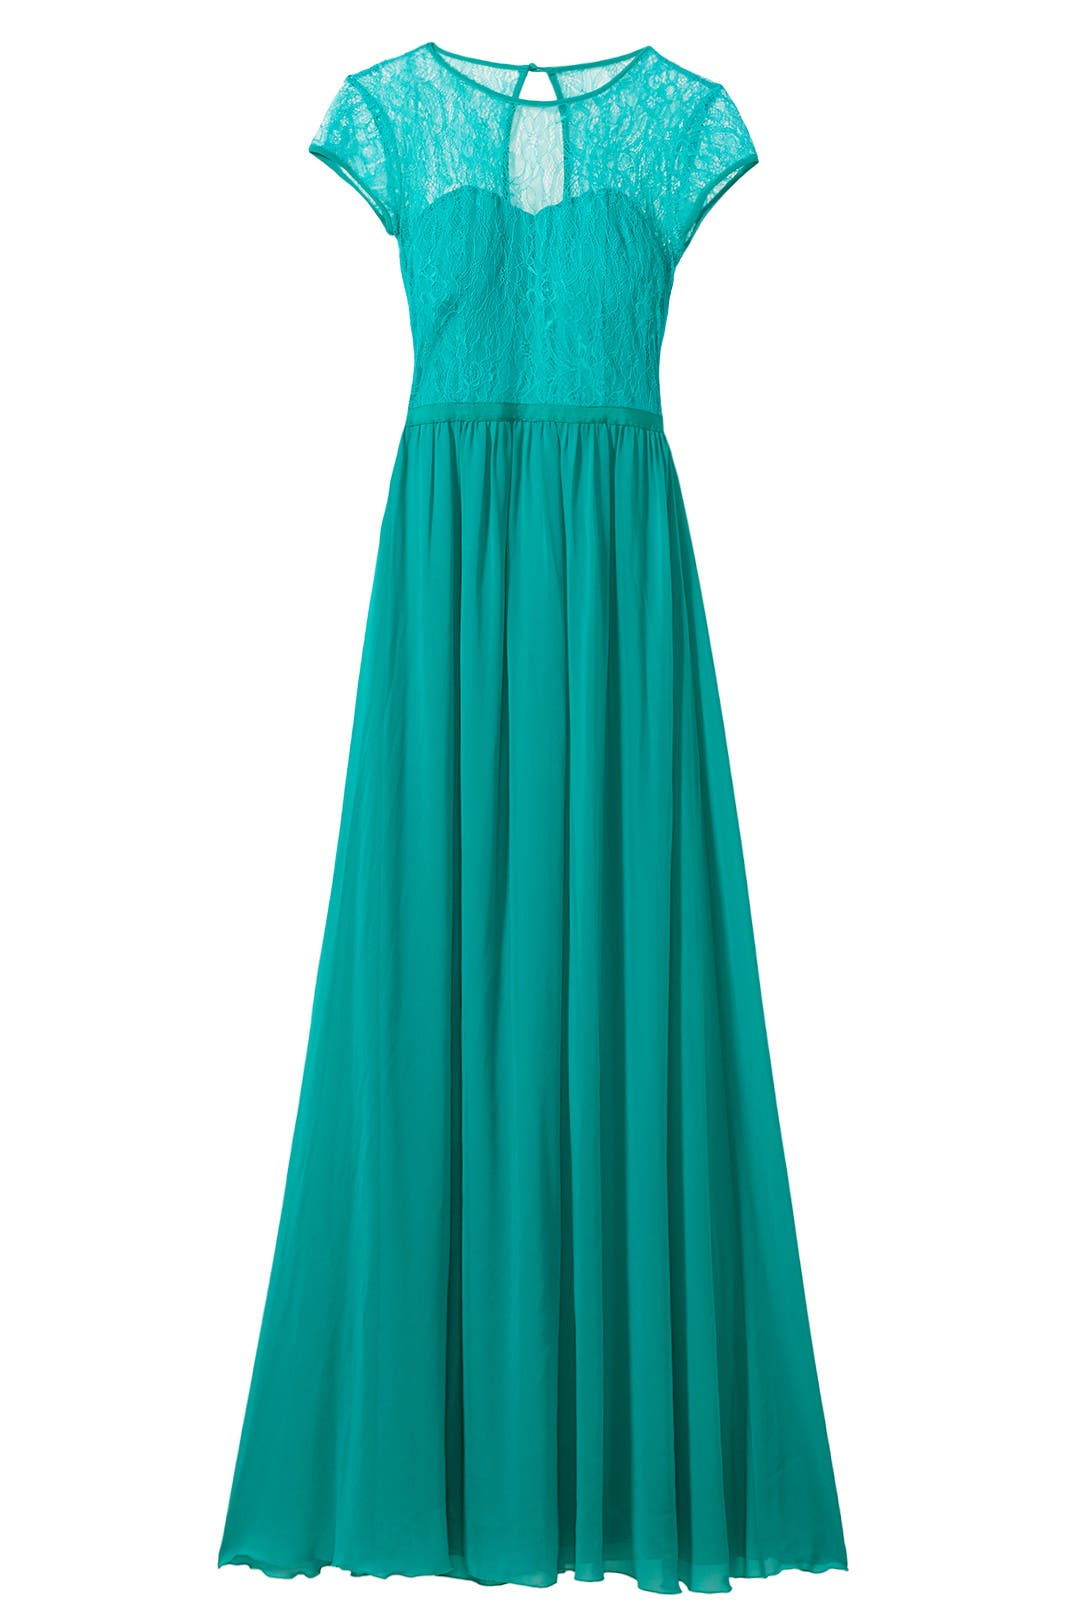 Tealjuana Gown by ERIN erin fetherston for $90 | Rent the Runway